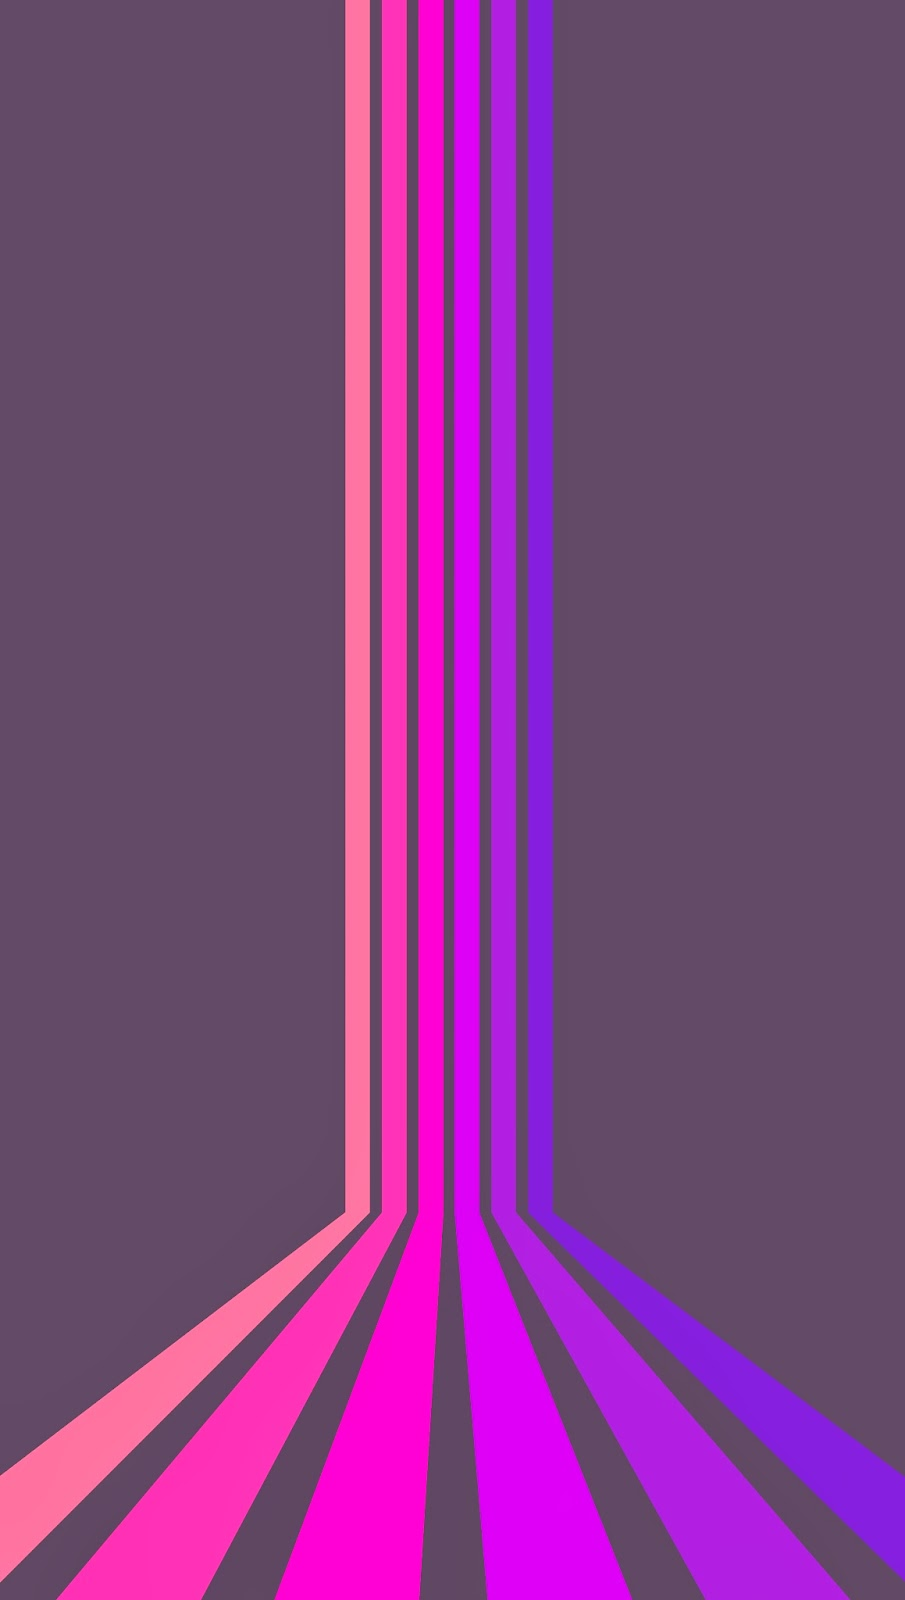 Violet Simple Lines Rainbow Android Wallpapers For Phone And Touch Pad HD High Quality 5300x3000 Pixels Free Download